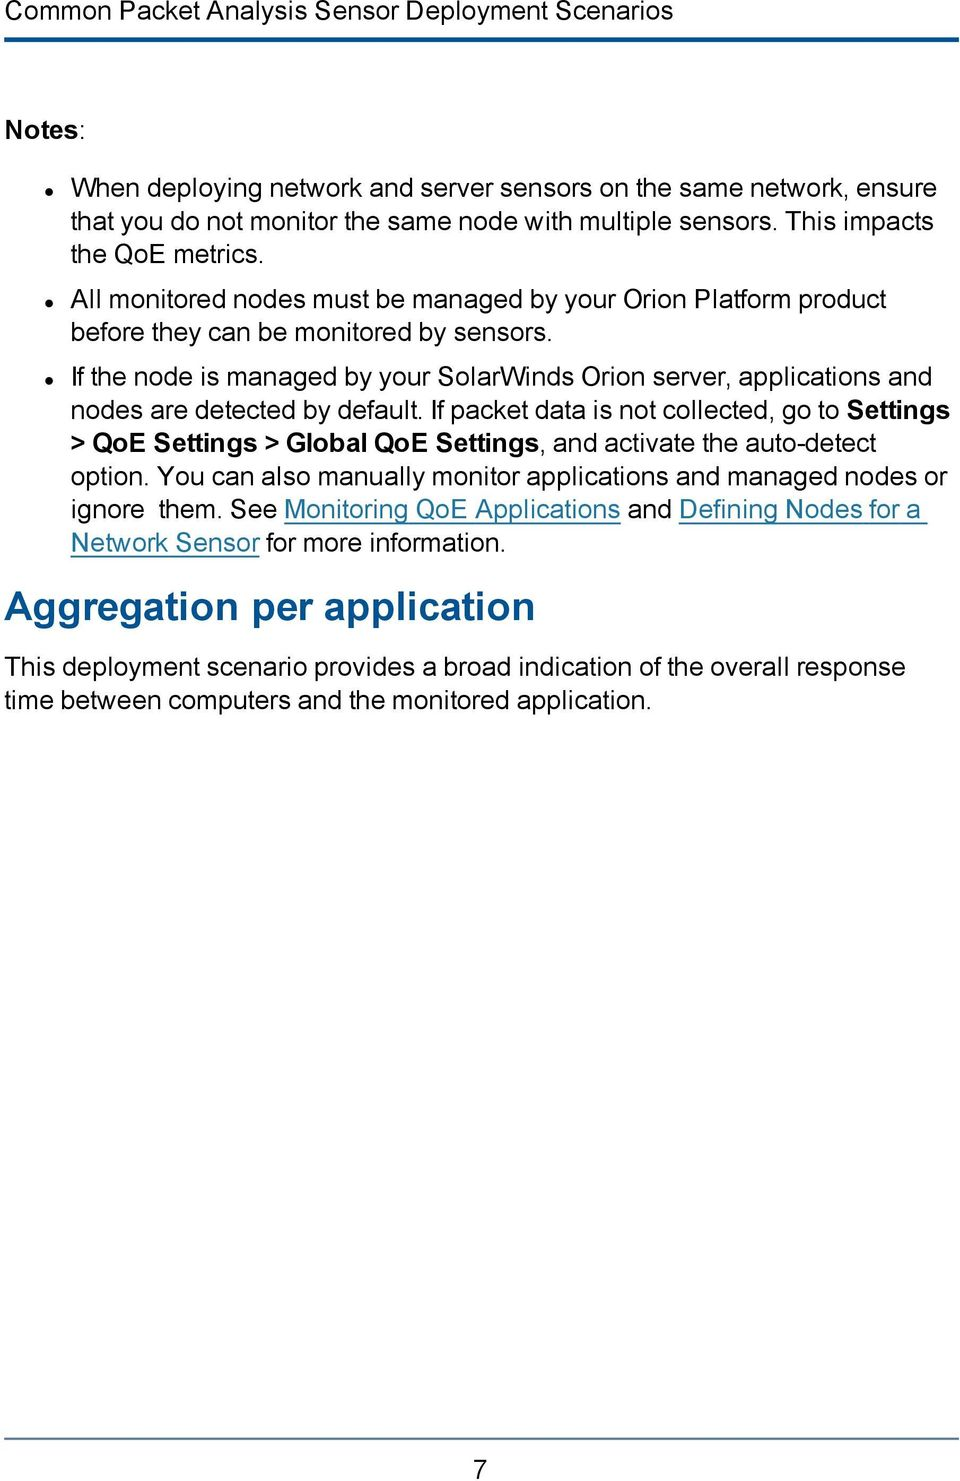 If the node is managed by your SolarWinds Orion server, applications and nodes are detected by default.